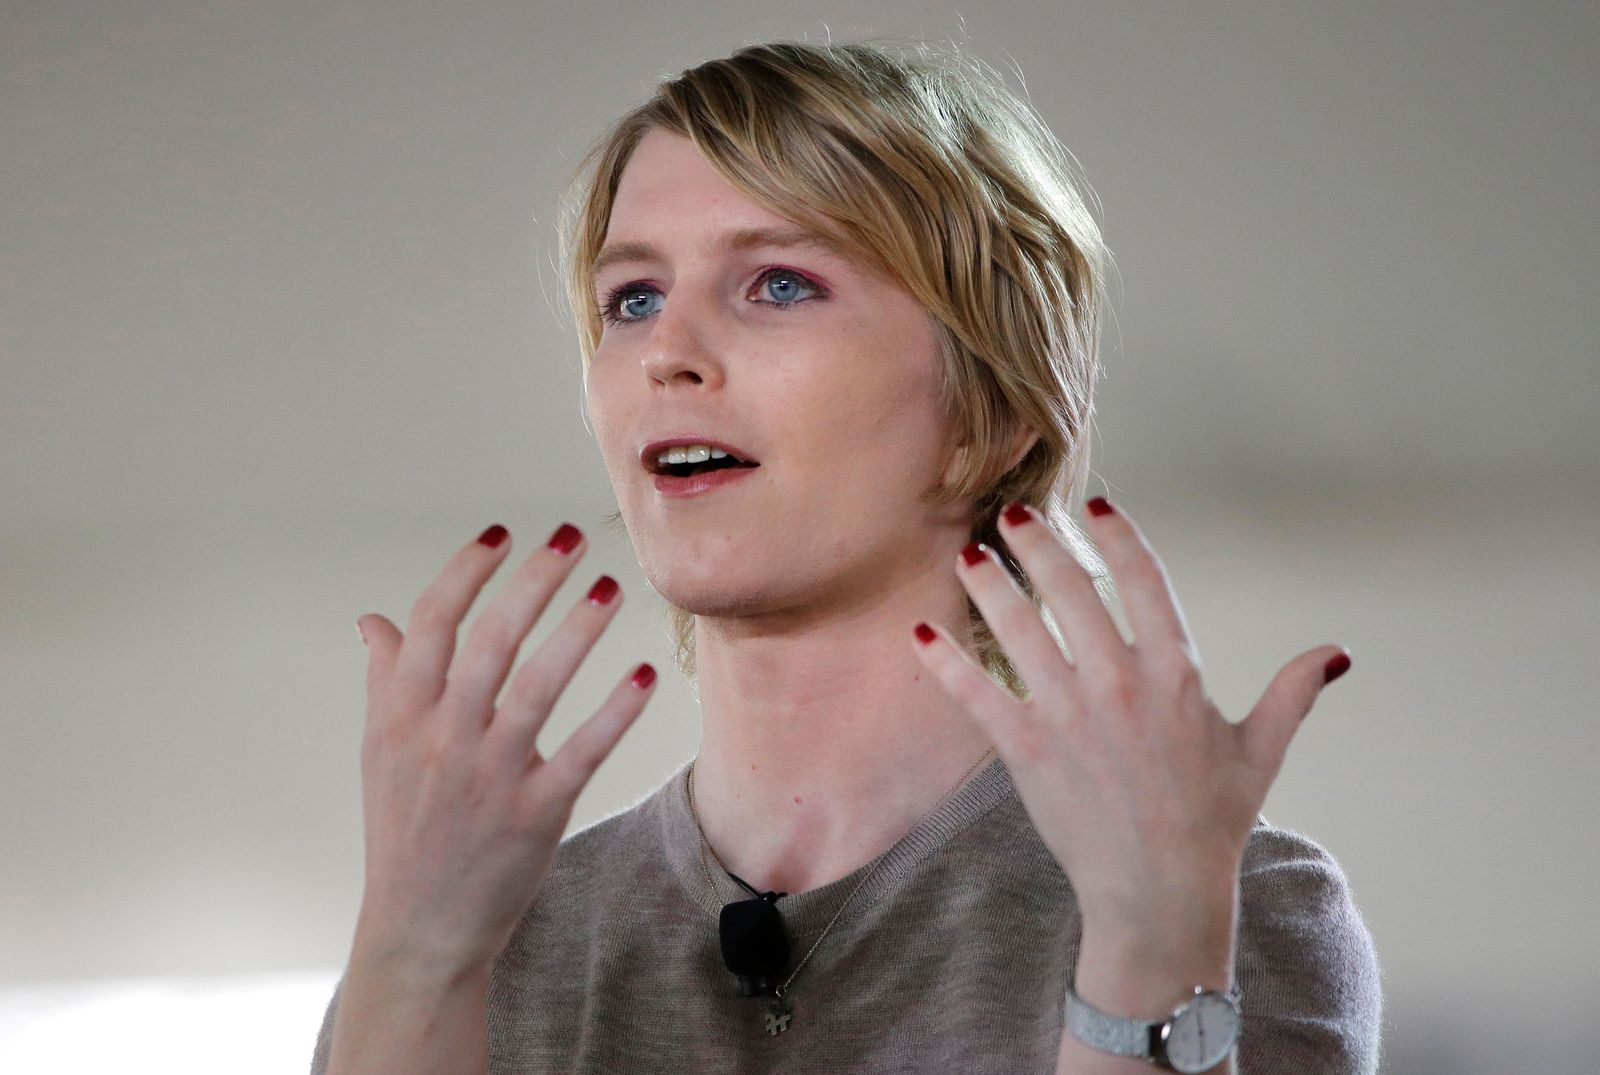 FILE - In this Sunday, Sept. 17, 2017 file photo, Chelsea Manning speaks during the Nantucket Project's annual gathering in Nantucket, Mass. (AP Photo/Steven Senne)